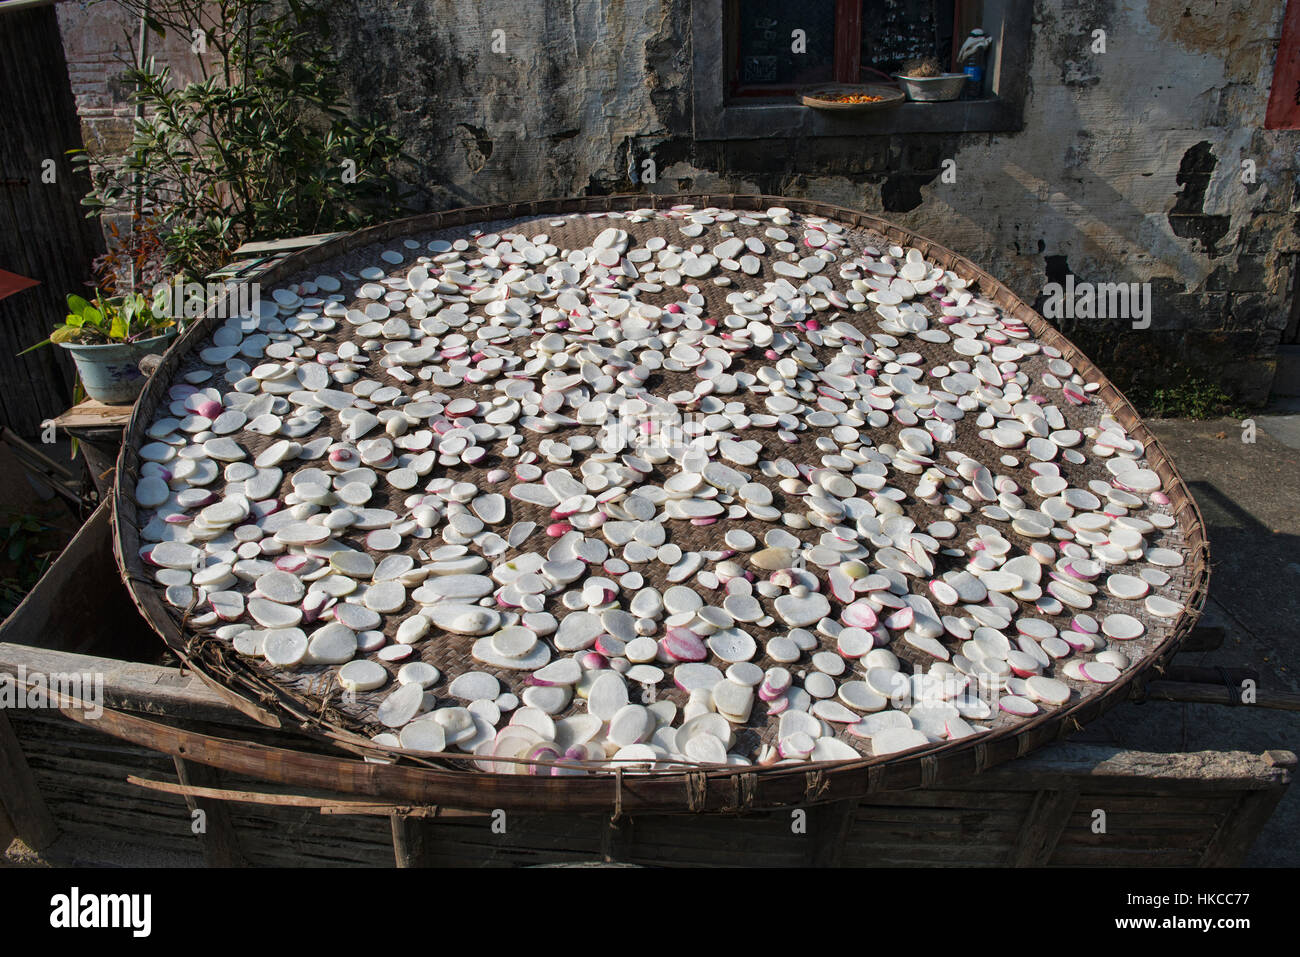 Daikon radishes drying in the ancient village of Xidi, Anhui, China - Stock Image